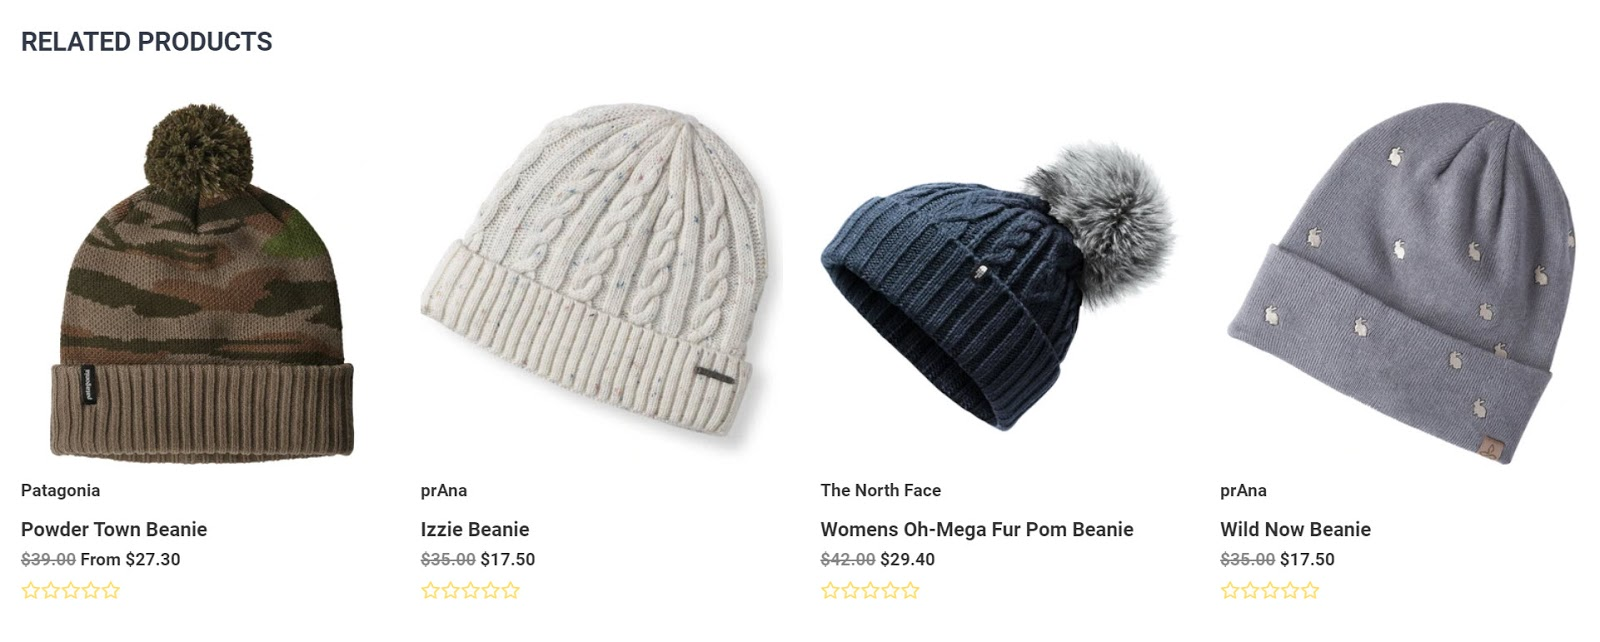 related products that feature images of beanies in different colors